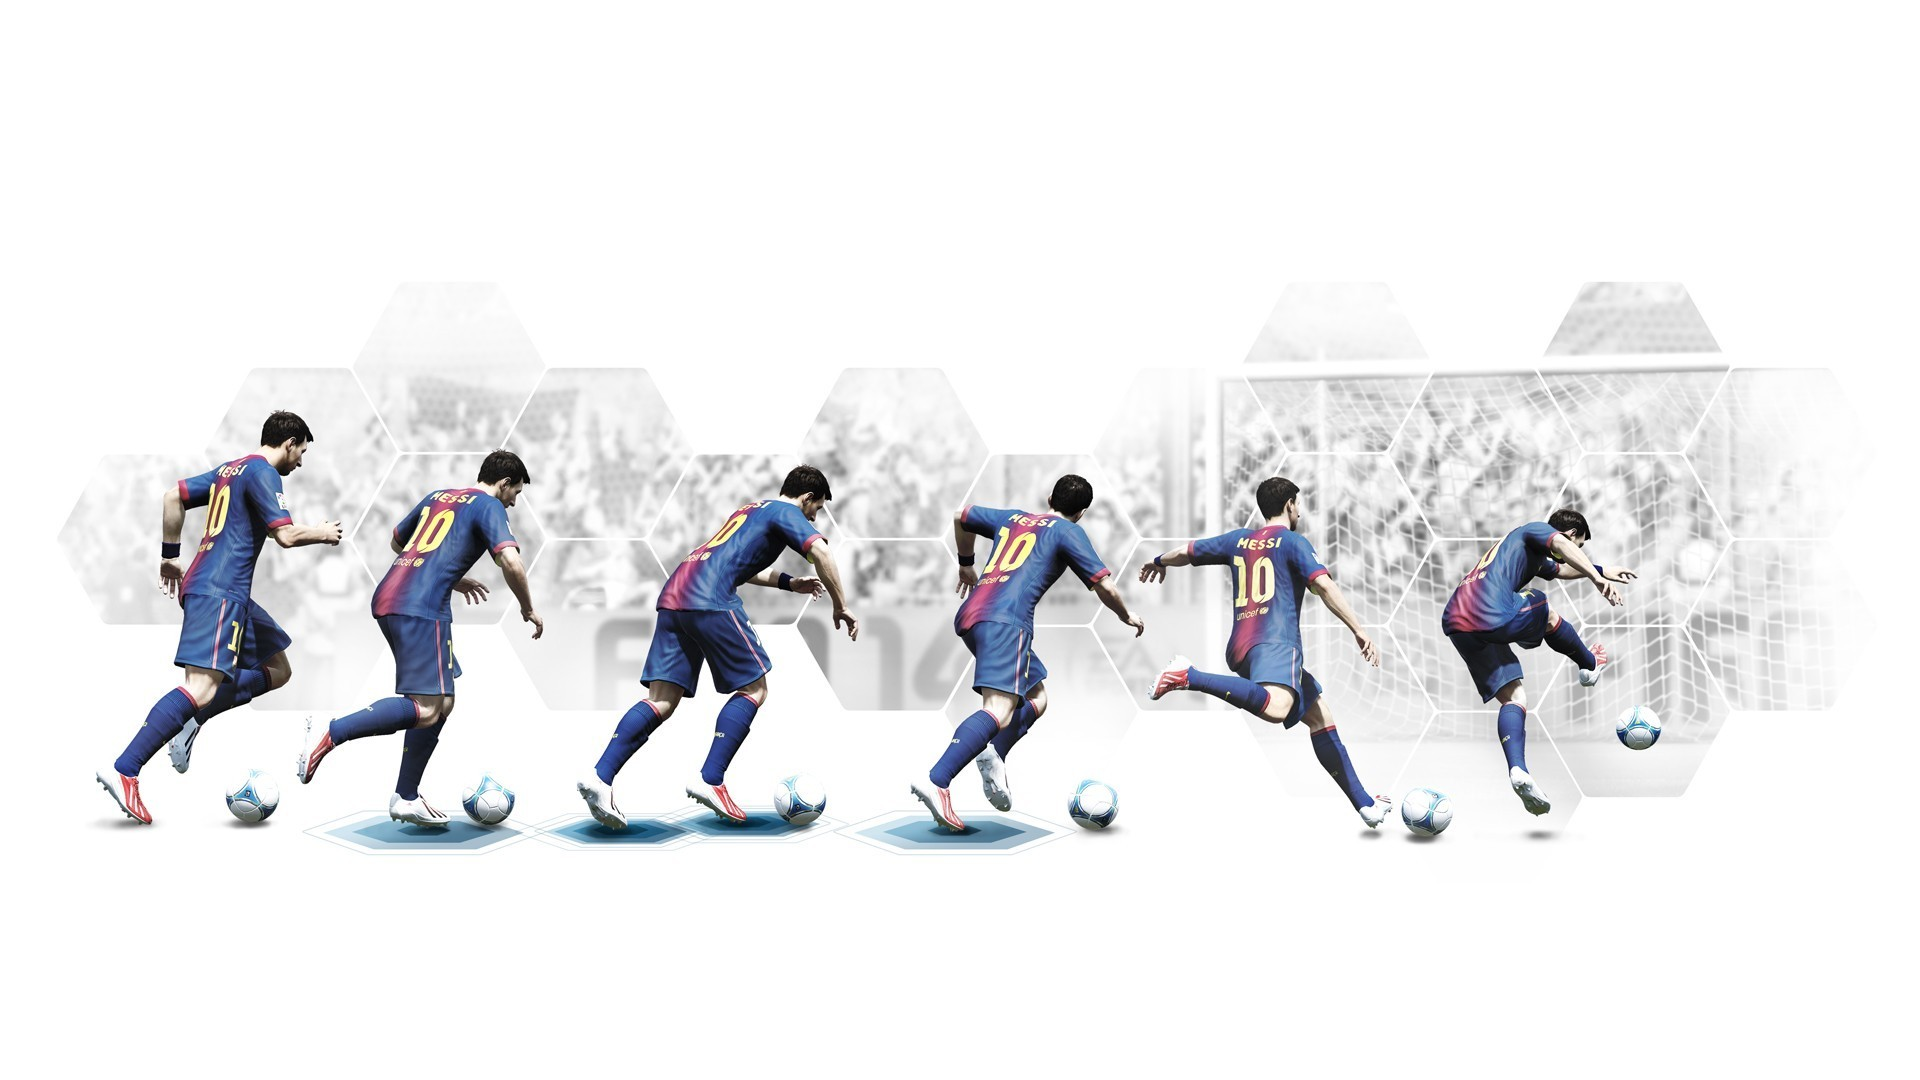 Lionel messi wallpaper wallpaper high definition high quality lionel messi wallpaper voltagebd Image collections